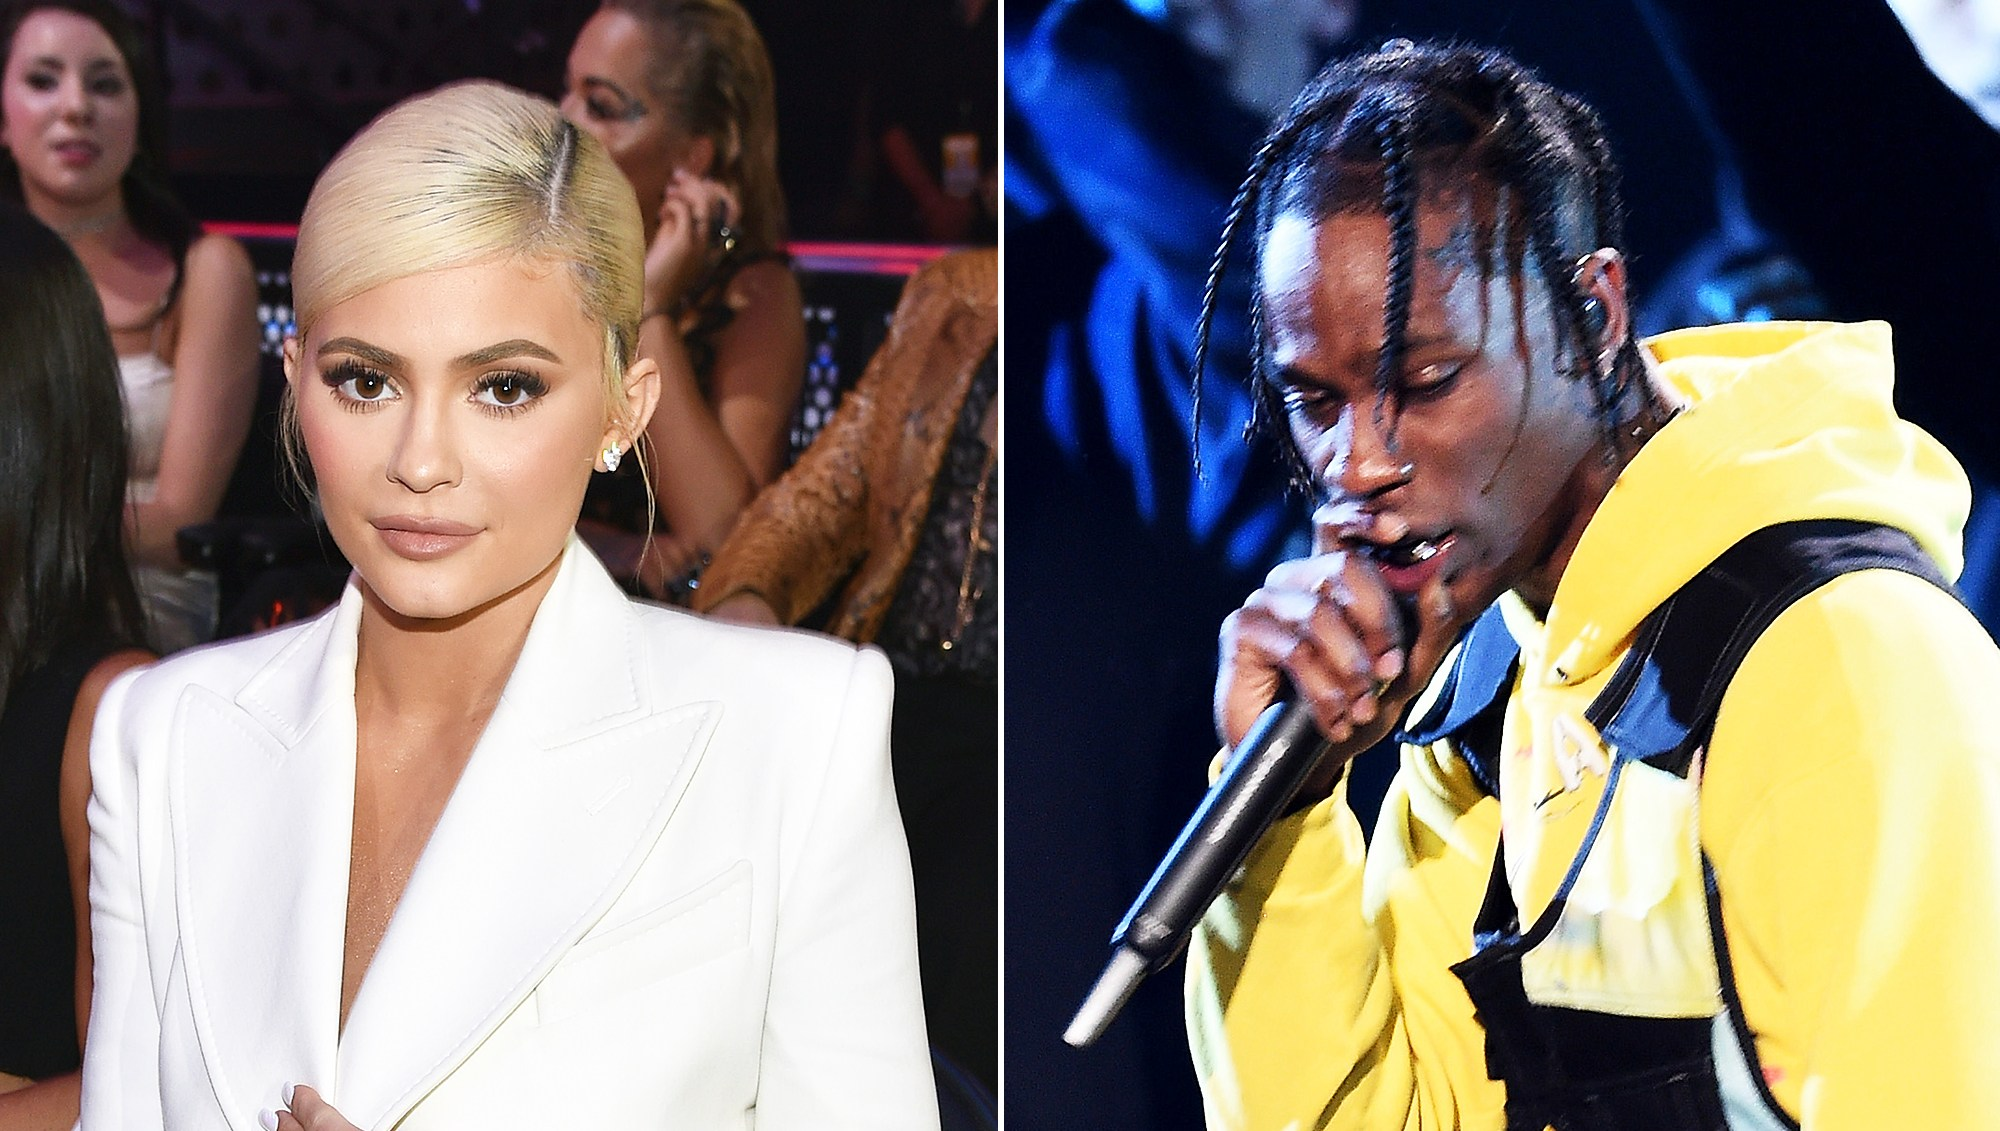 Kylie Jenner Travis Scott Performance VMAs 2018